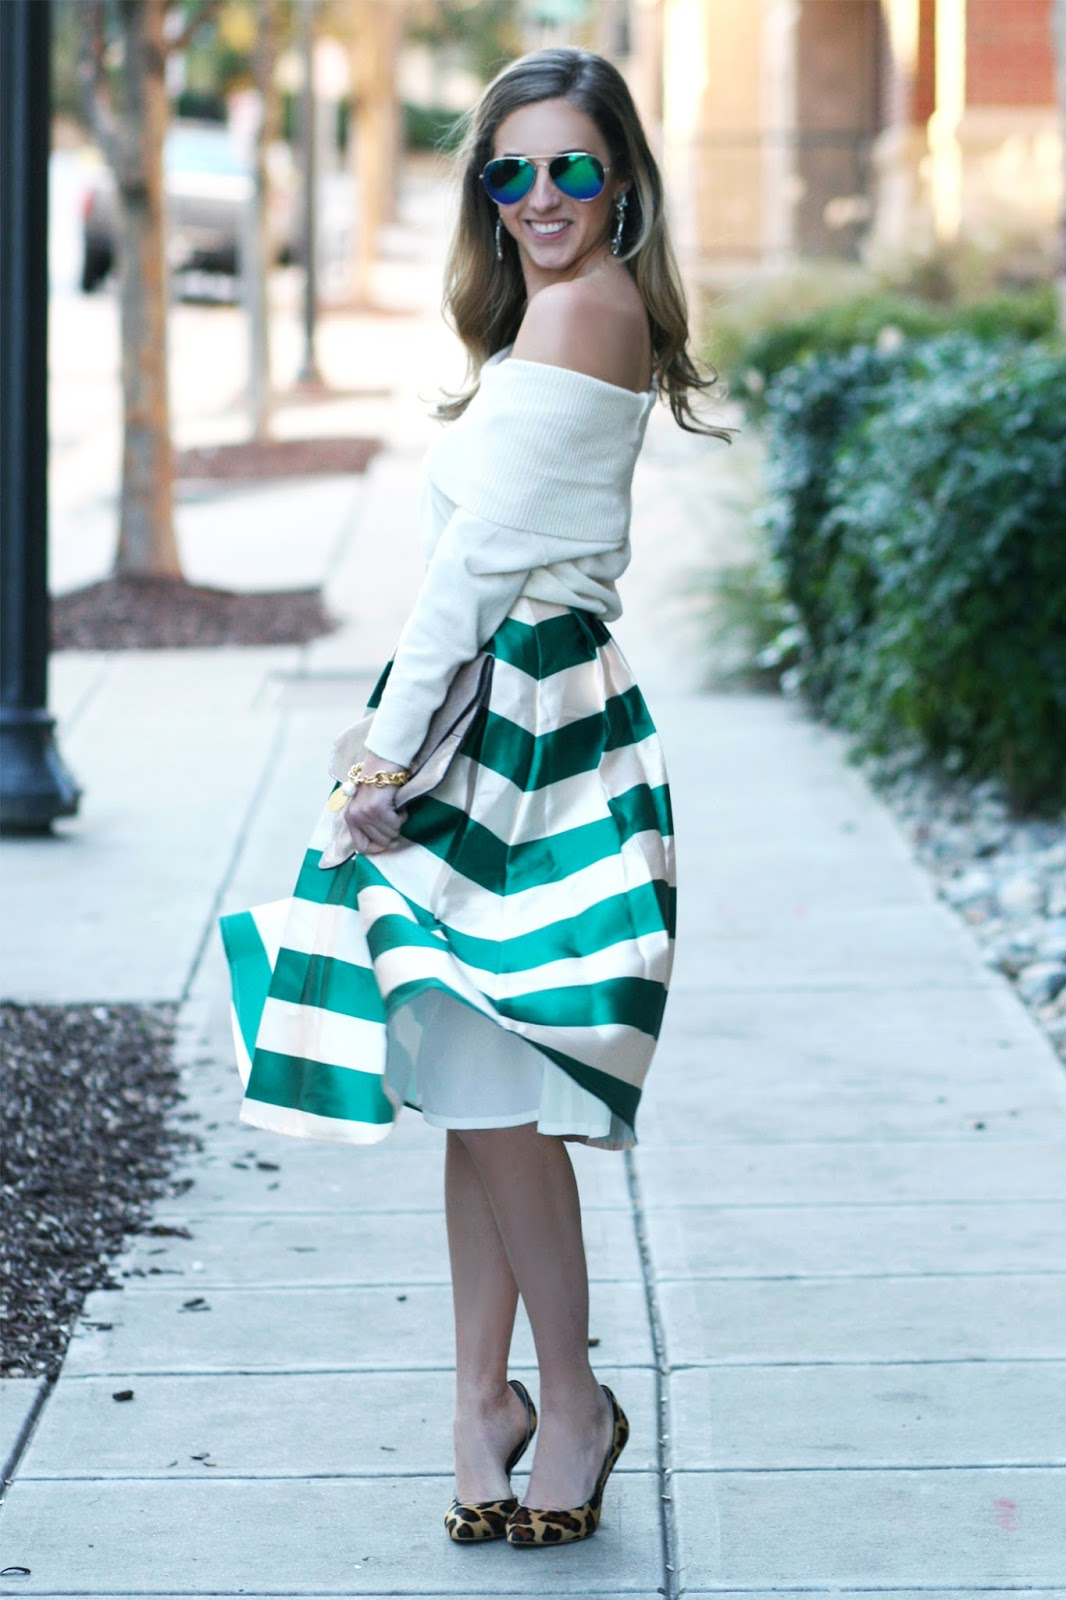 off-the-shoulder-sweater-with-midi-skirt-street-style